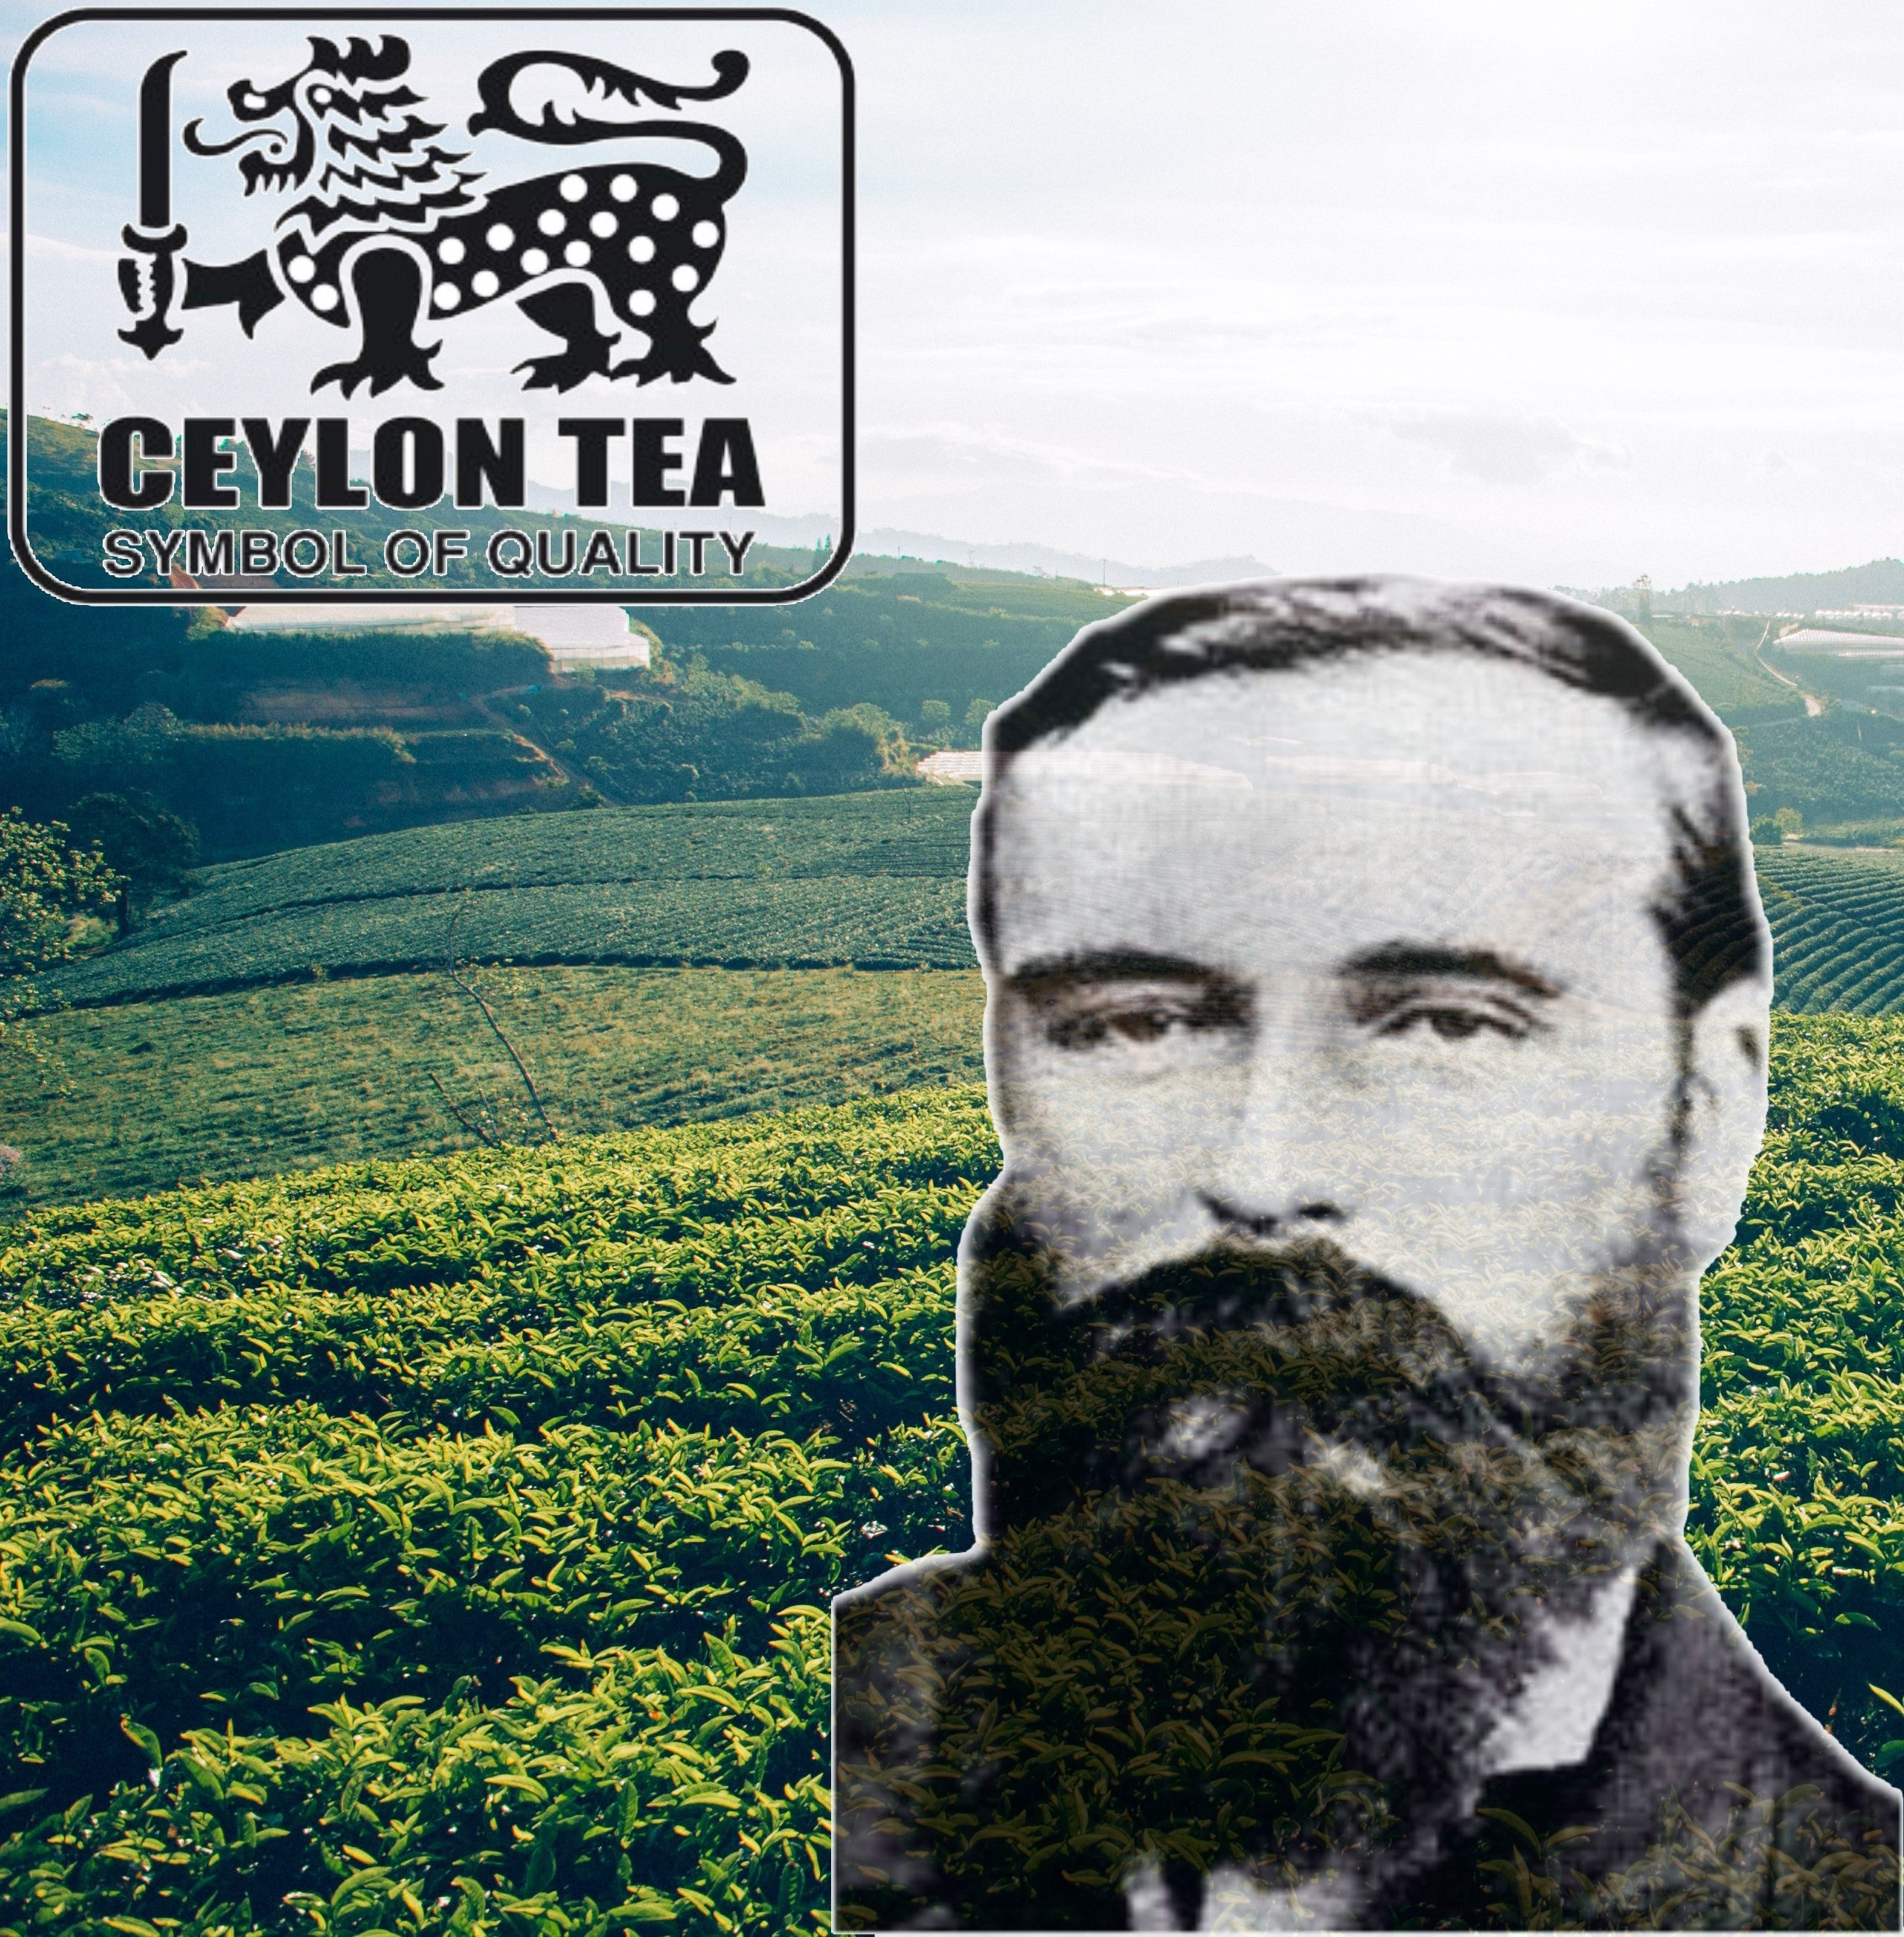 The Father of Sri Lankan Tea